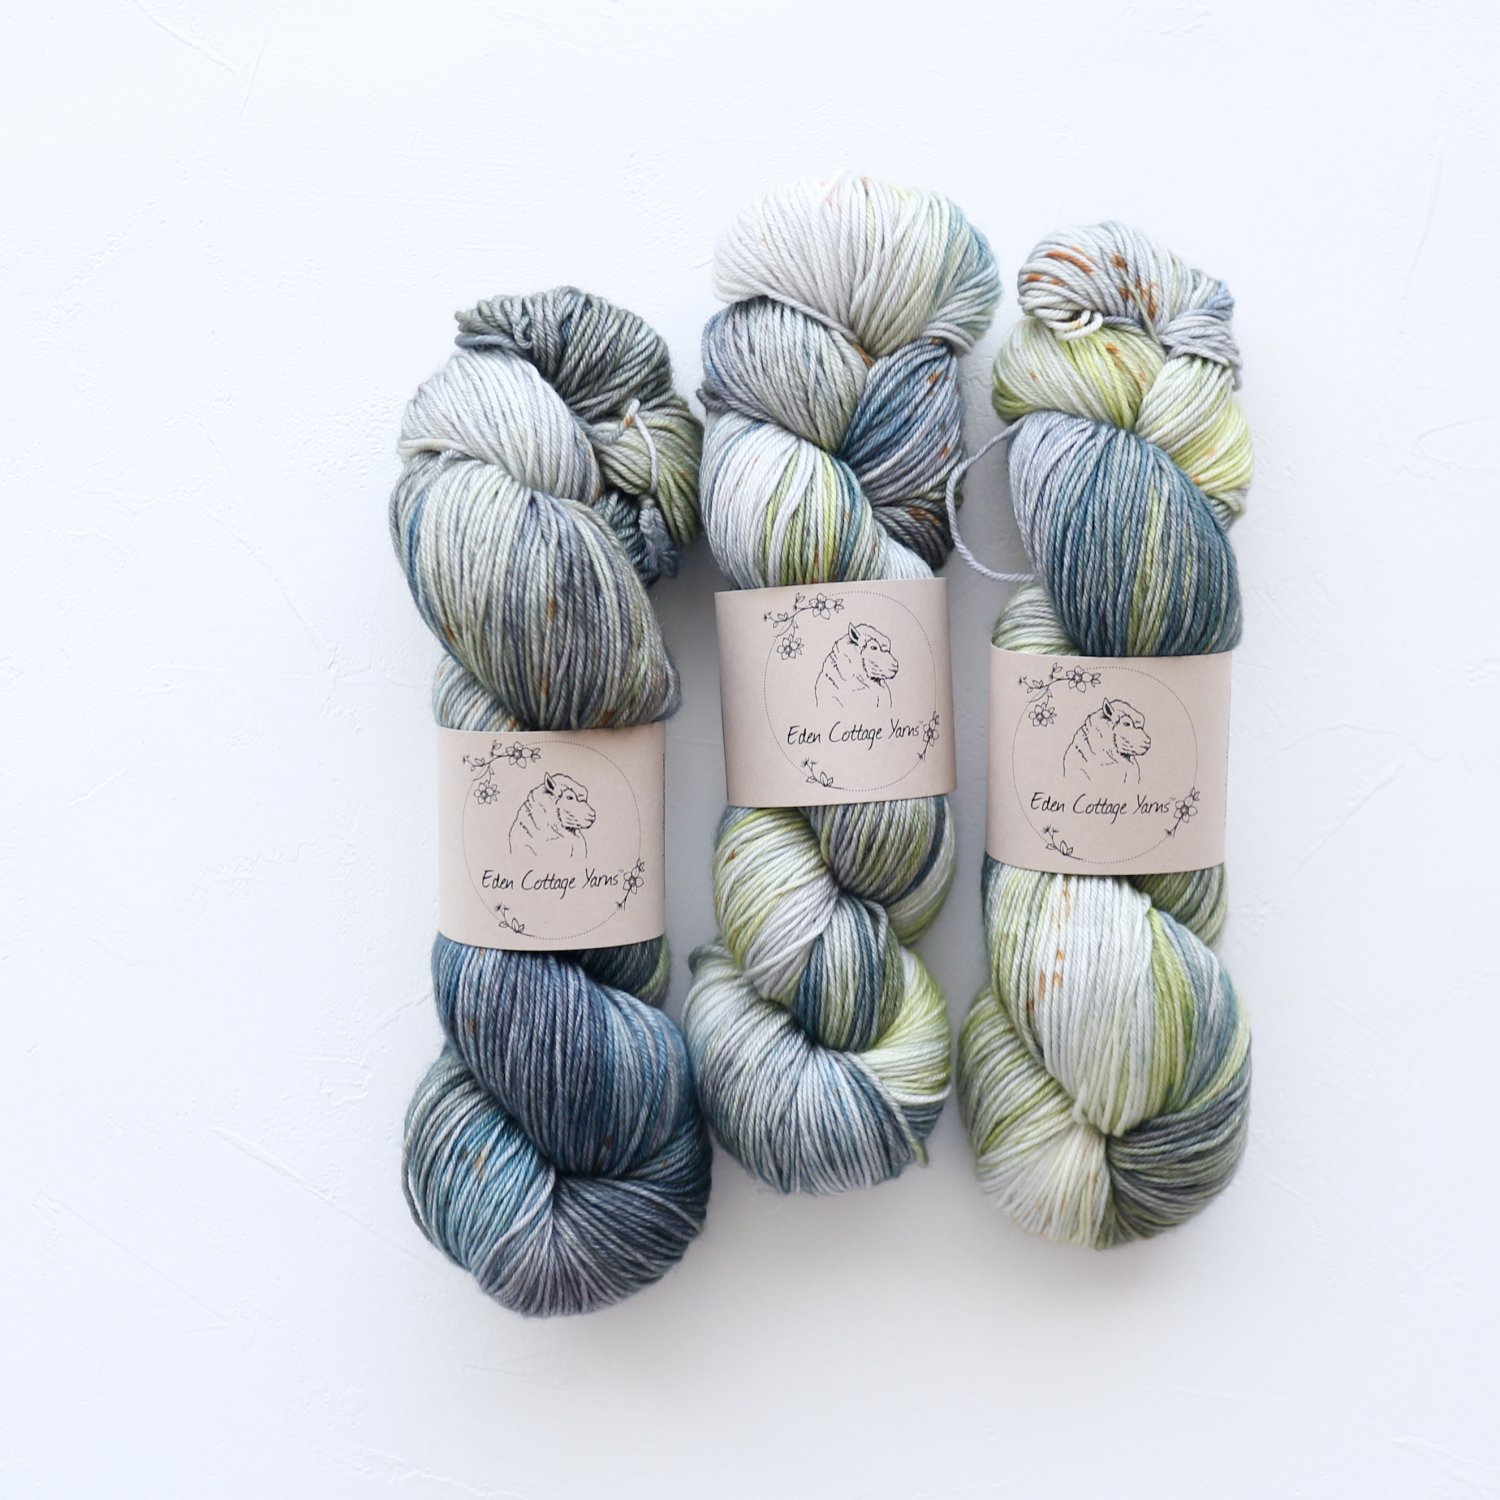 【Eden Cottage Yarns】<br>Pendle 4ply<br>Thicket